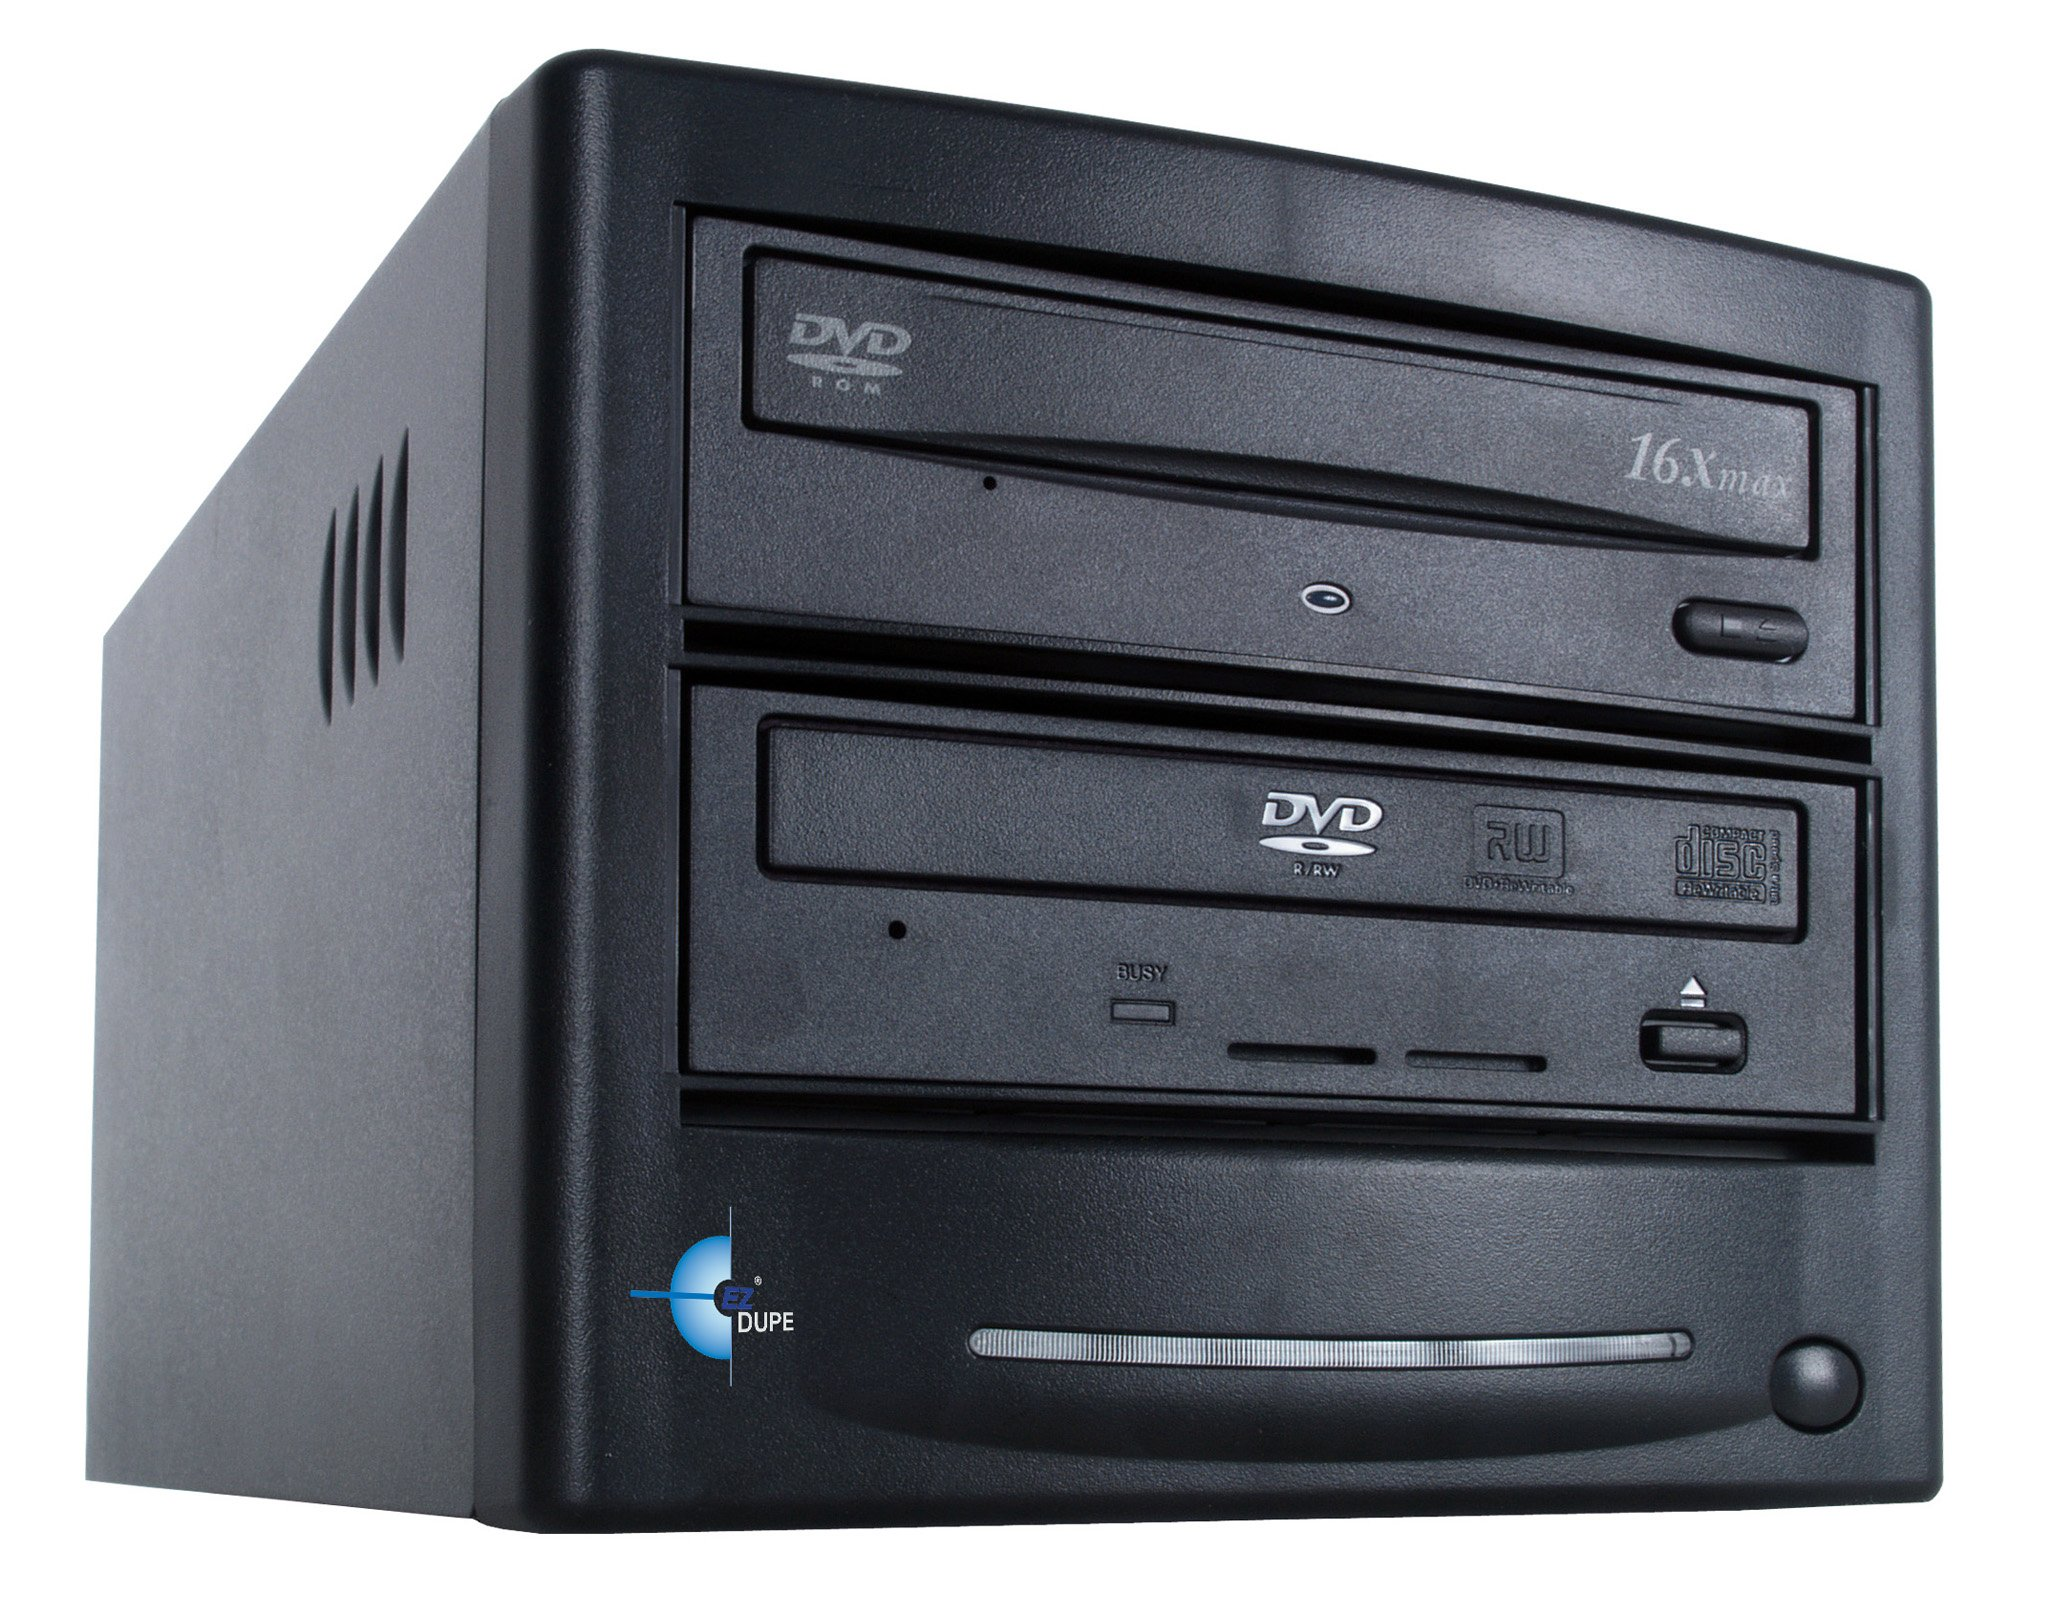 EZ Dupe 1 Copy DVD/CD Duplicator GS1SAMB (Black)